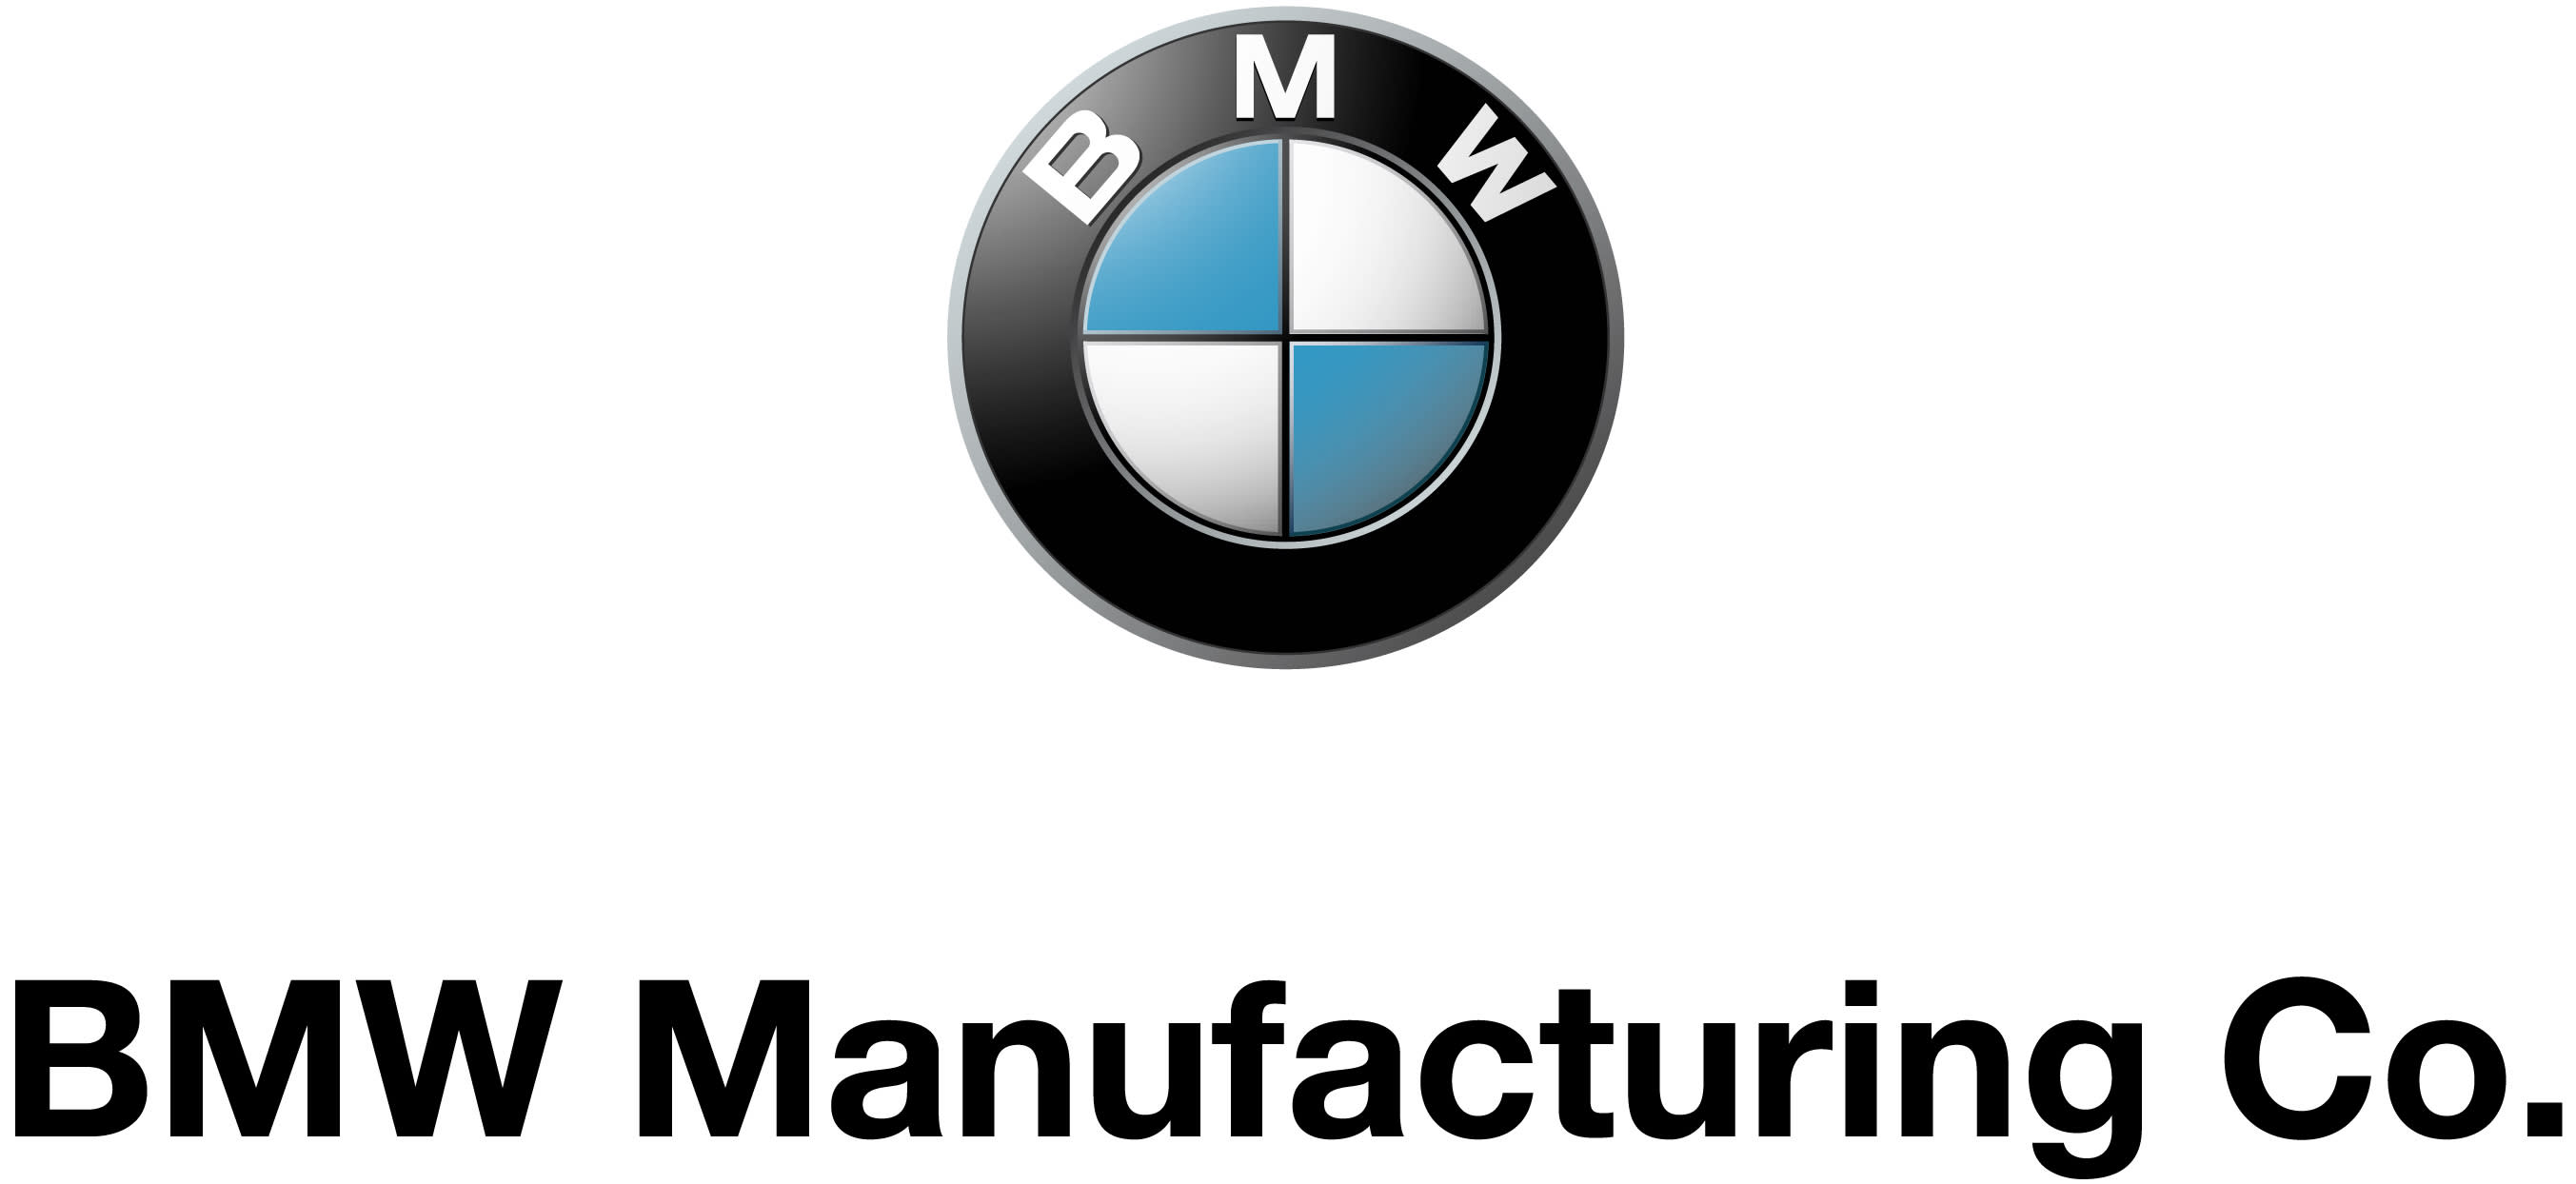 Bmw Manufacturing Co Crunchbase Company Profile Funding